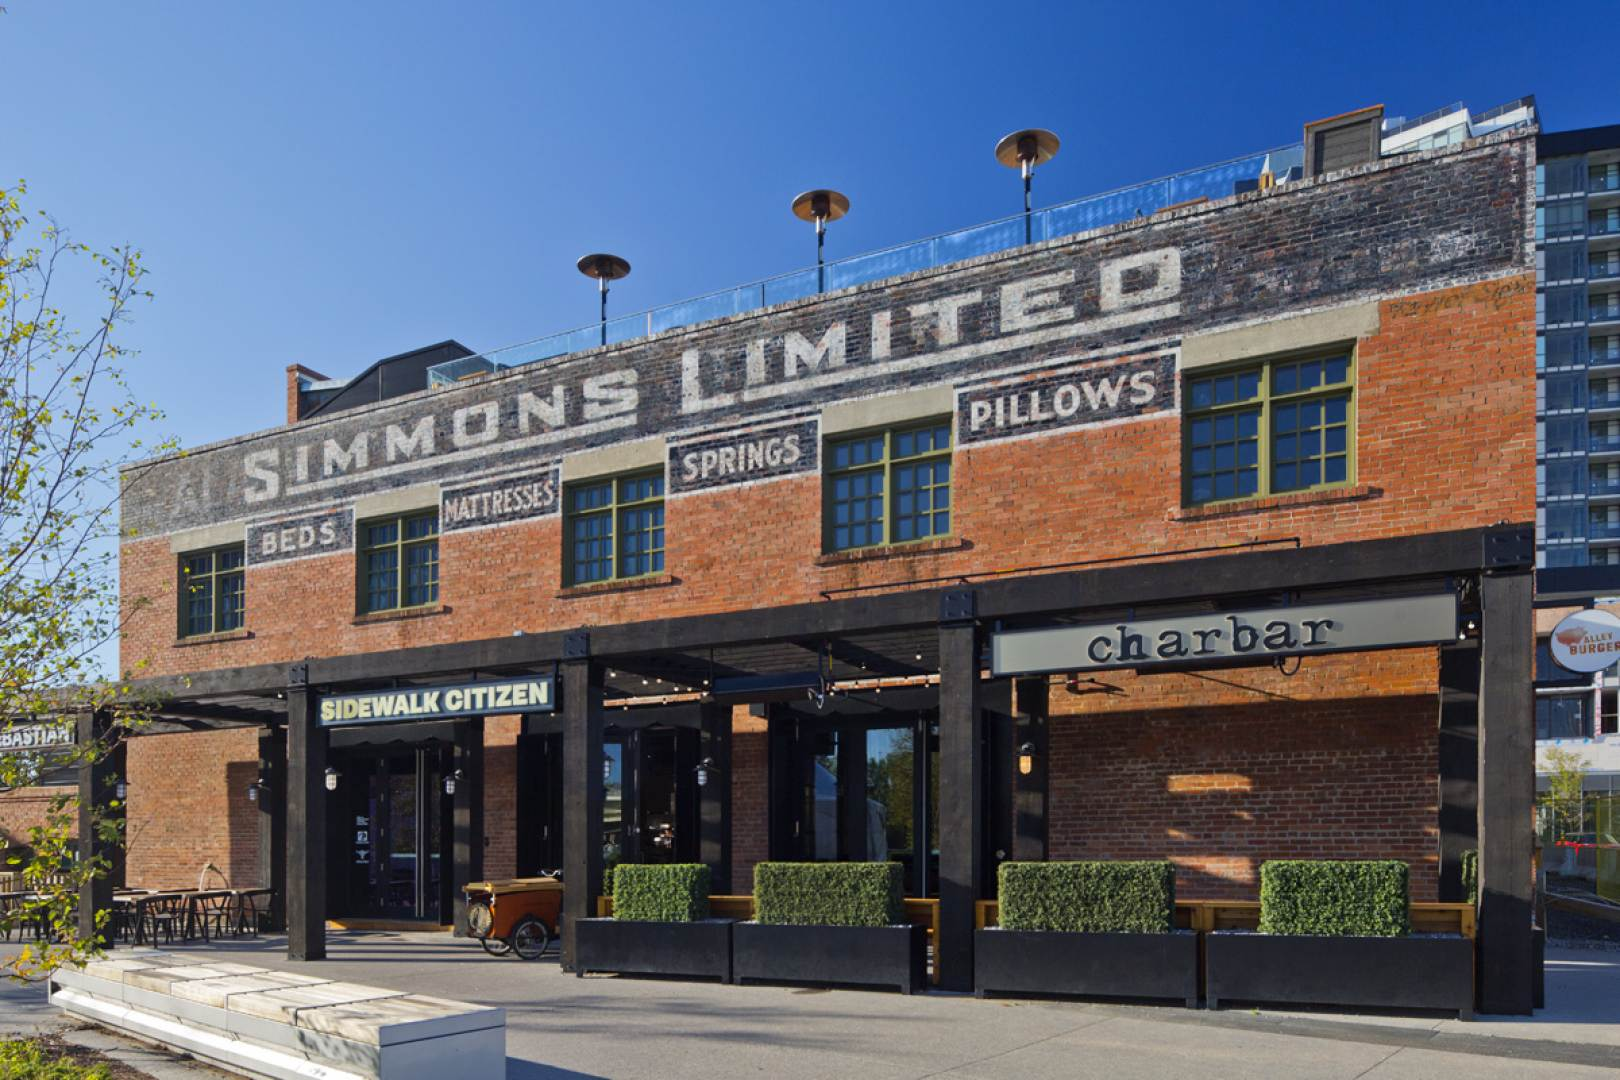 Simmons Mattress Building Restoration